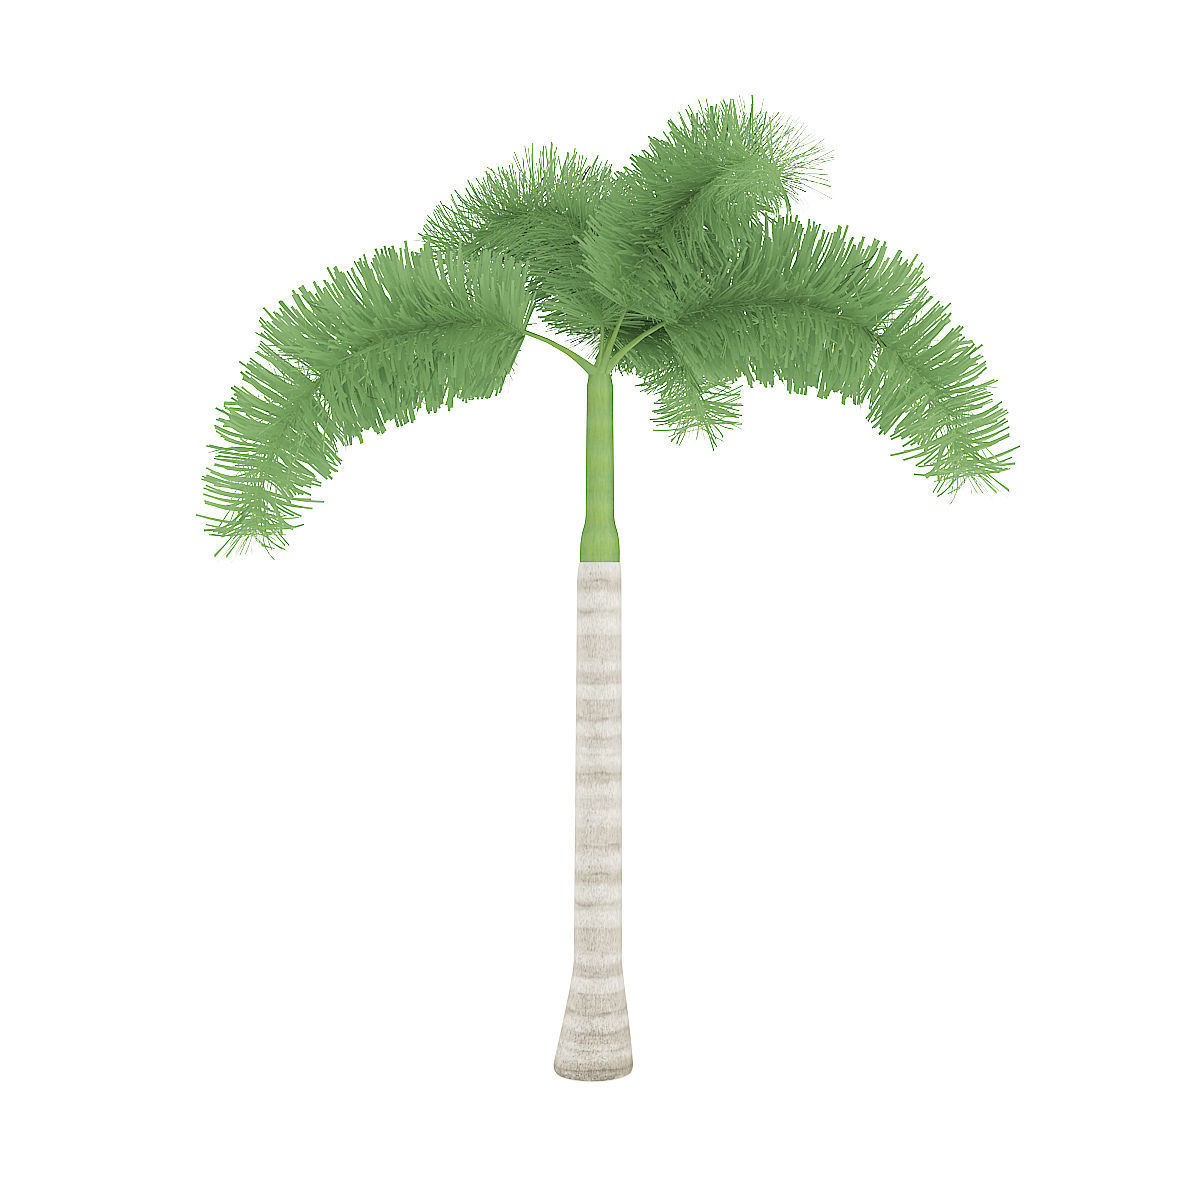 Tempting Foxtail Palm 3d Model Animated Max Obj Fbx C4d Mtl Foxtail Palm Tree Diseases Foxtail Palm Tree Lowes houzz-02 Foxtail Palm Tree